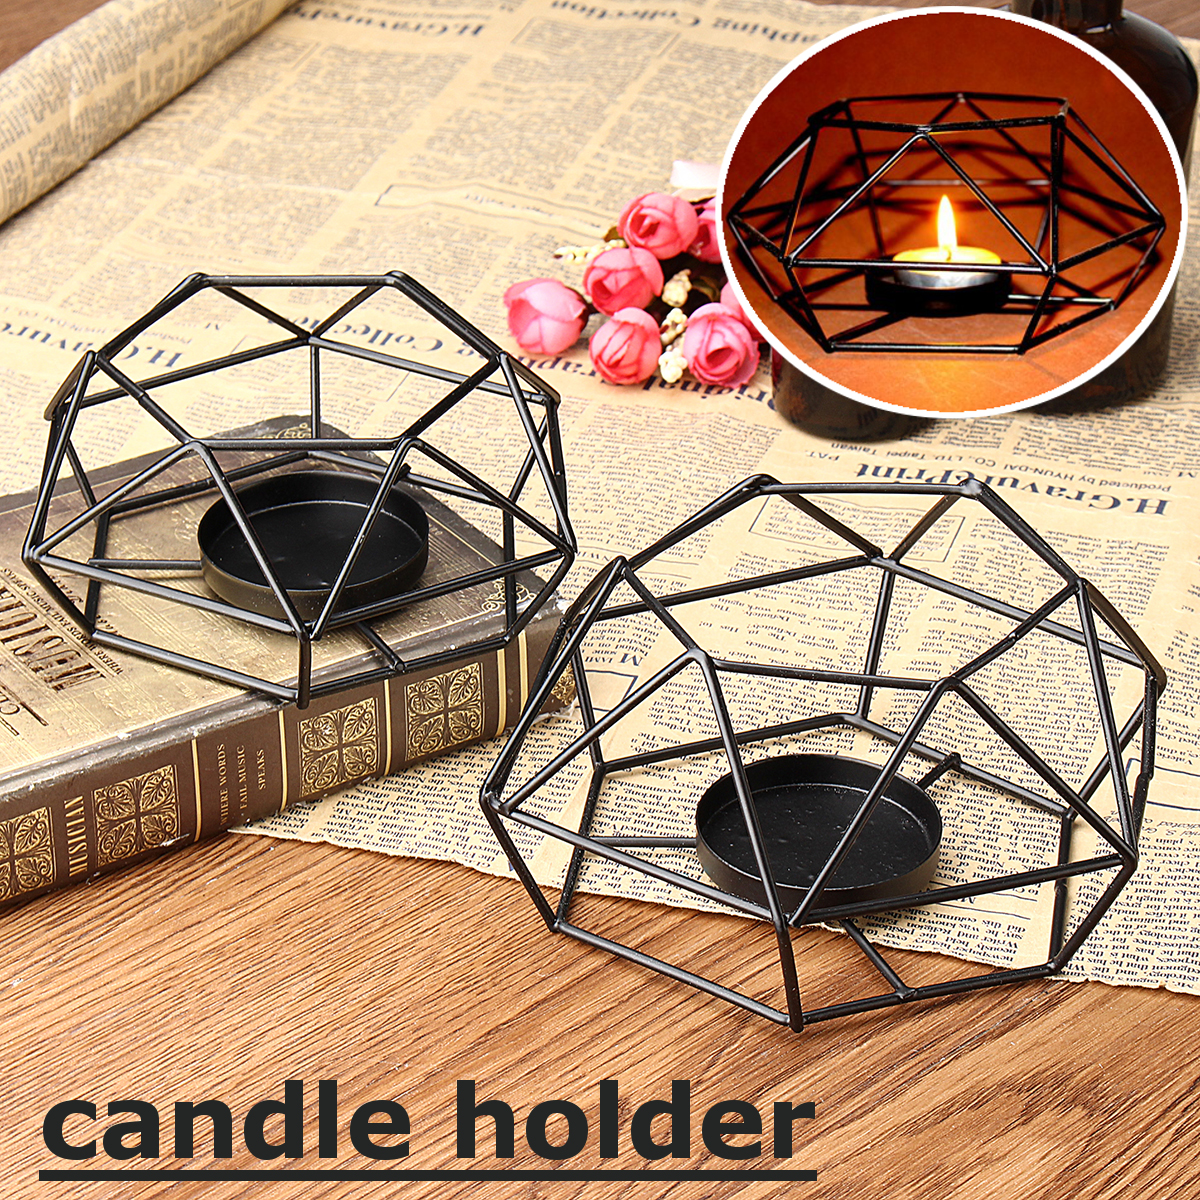 Home Decor 2pcs Geometric Wall Candle Holder 3d Geometric Candlestick Iron Round Wall Sconces For Pillar Candles Tea Light Living Room Bedroom Wedding Decor Black Home Kitchen Iambrand Co Ke